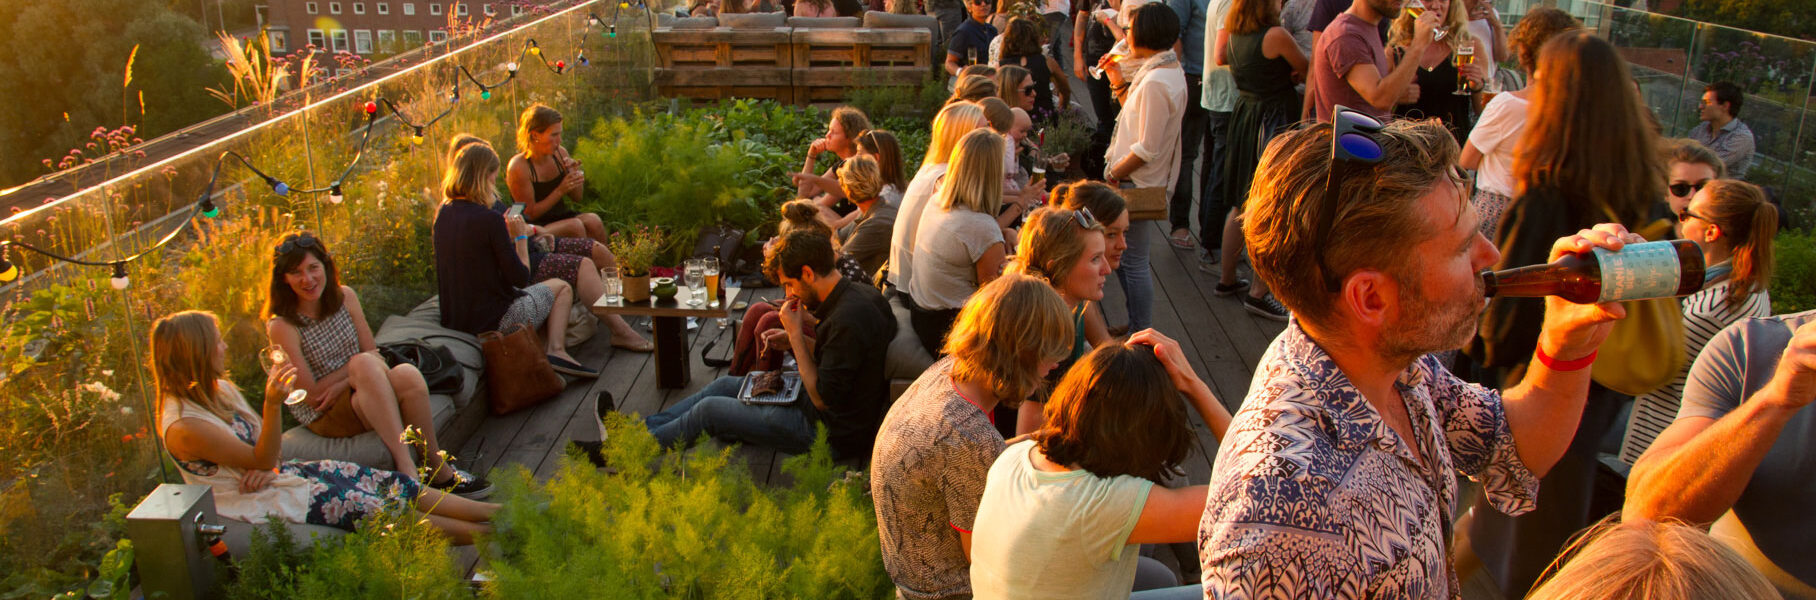 ROEF-Amsterdam-Rooftop-Festival-Nikki-Boomkens-001